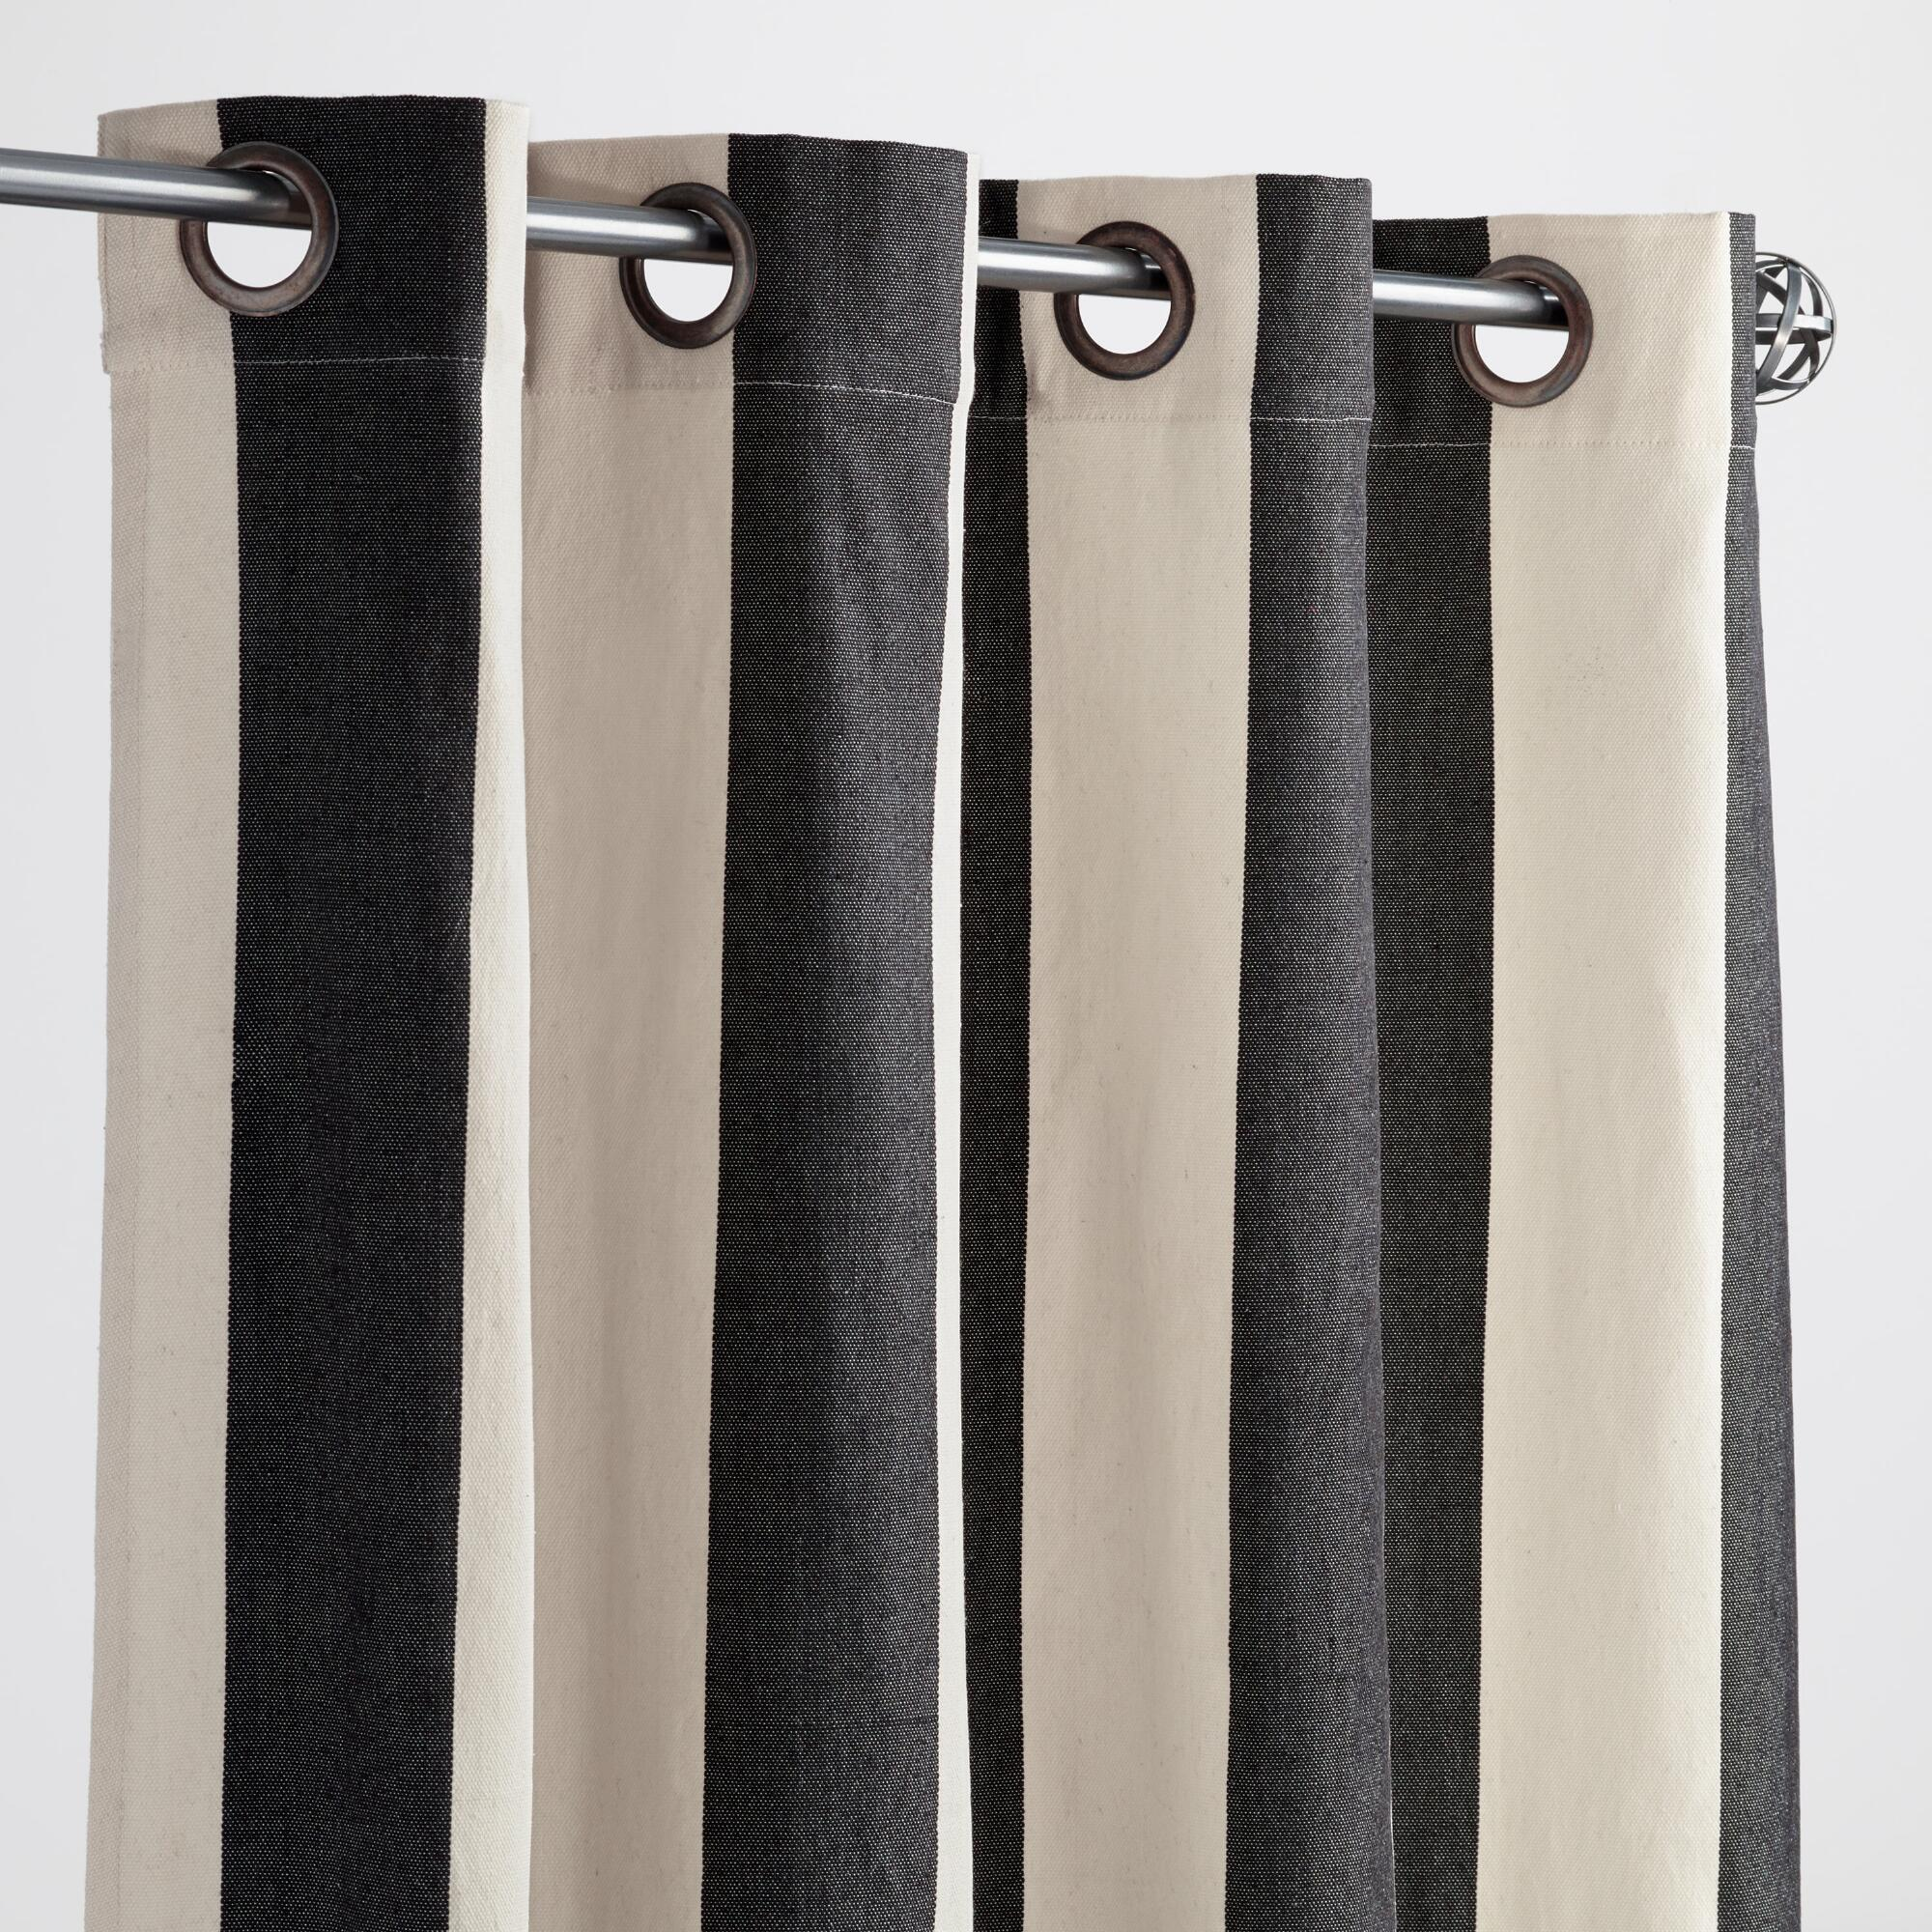 Outdoor curtains - Black And White Striped Awning Outdoor Curtains Set Of 2 World Market